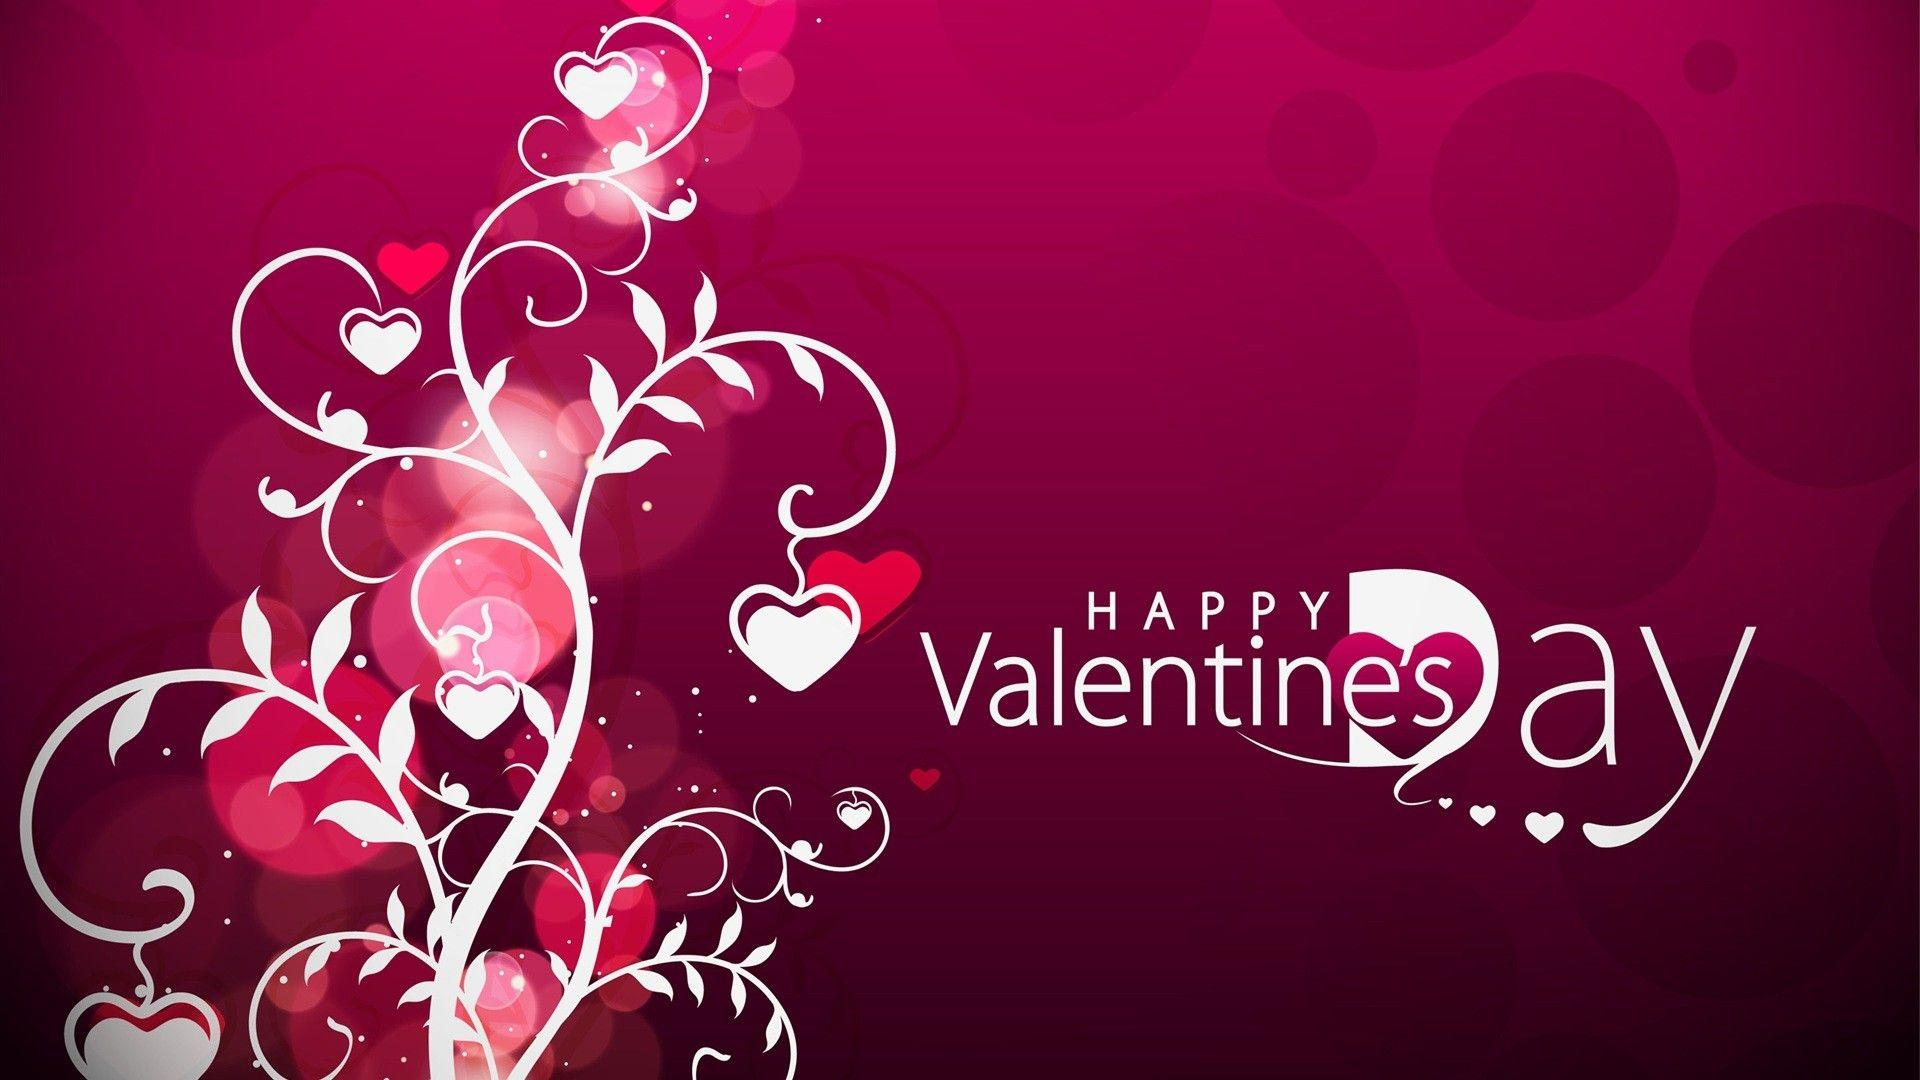 Valentines Day Wallpapers HD & 14th FEB image 2019 for lovers